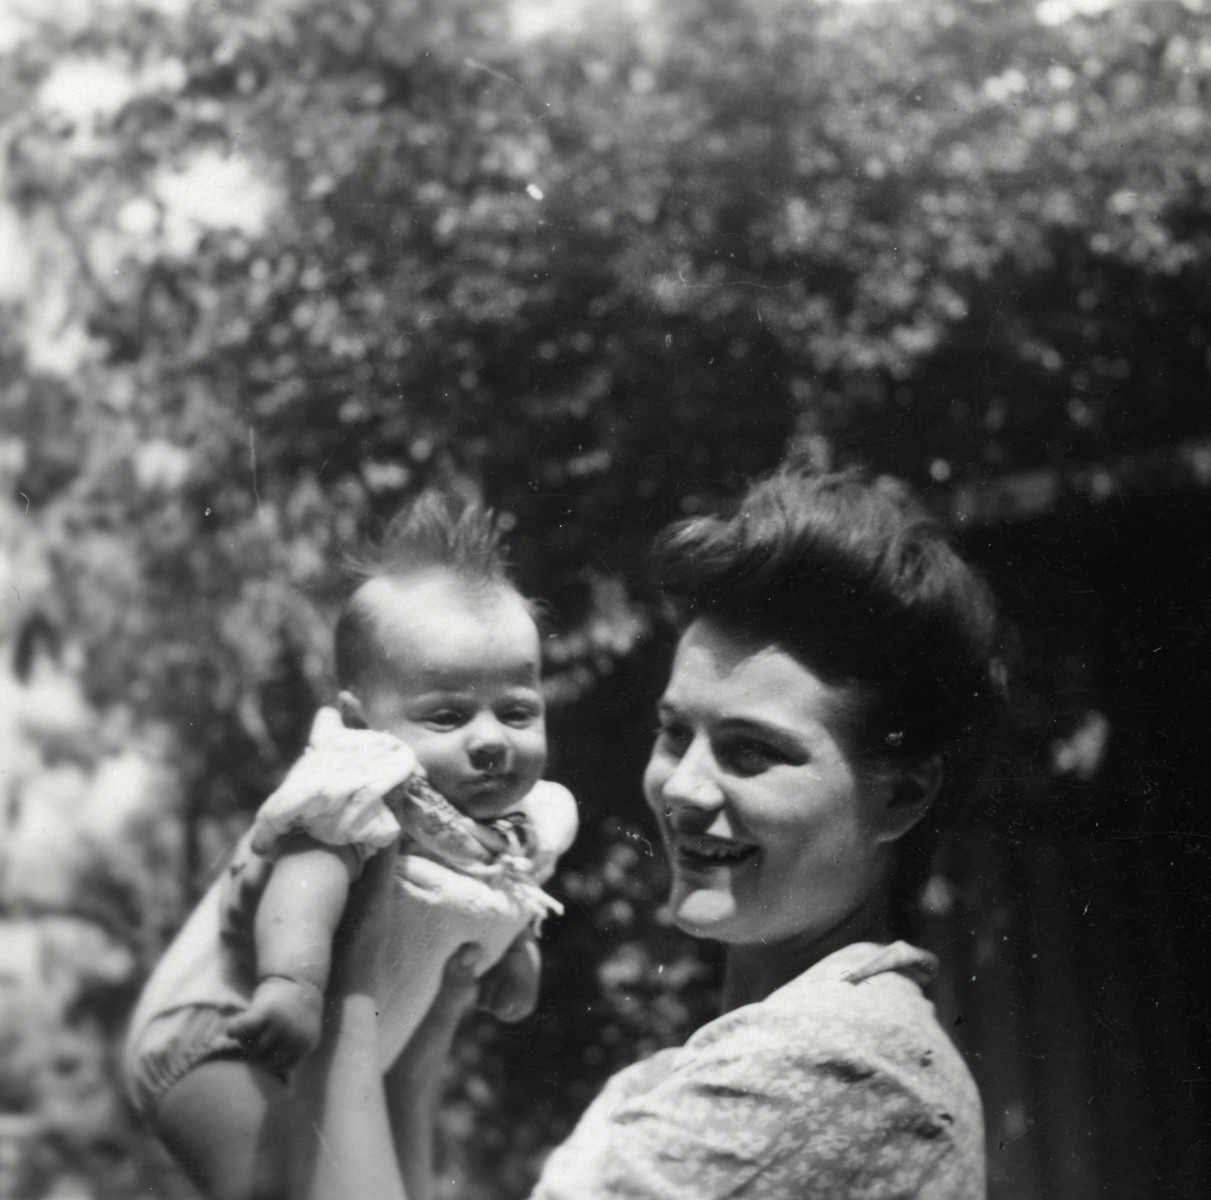 Fanny Reicher Cassorla (mother of the donor) holds her son Jose, then a few months old.